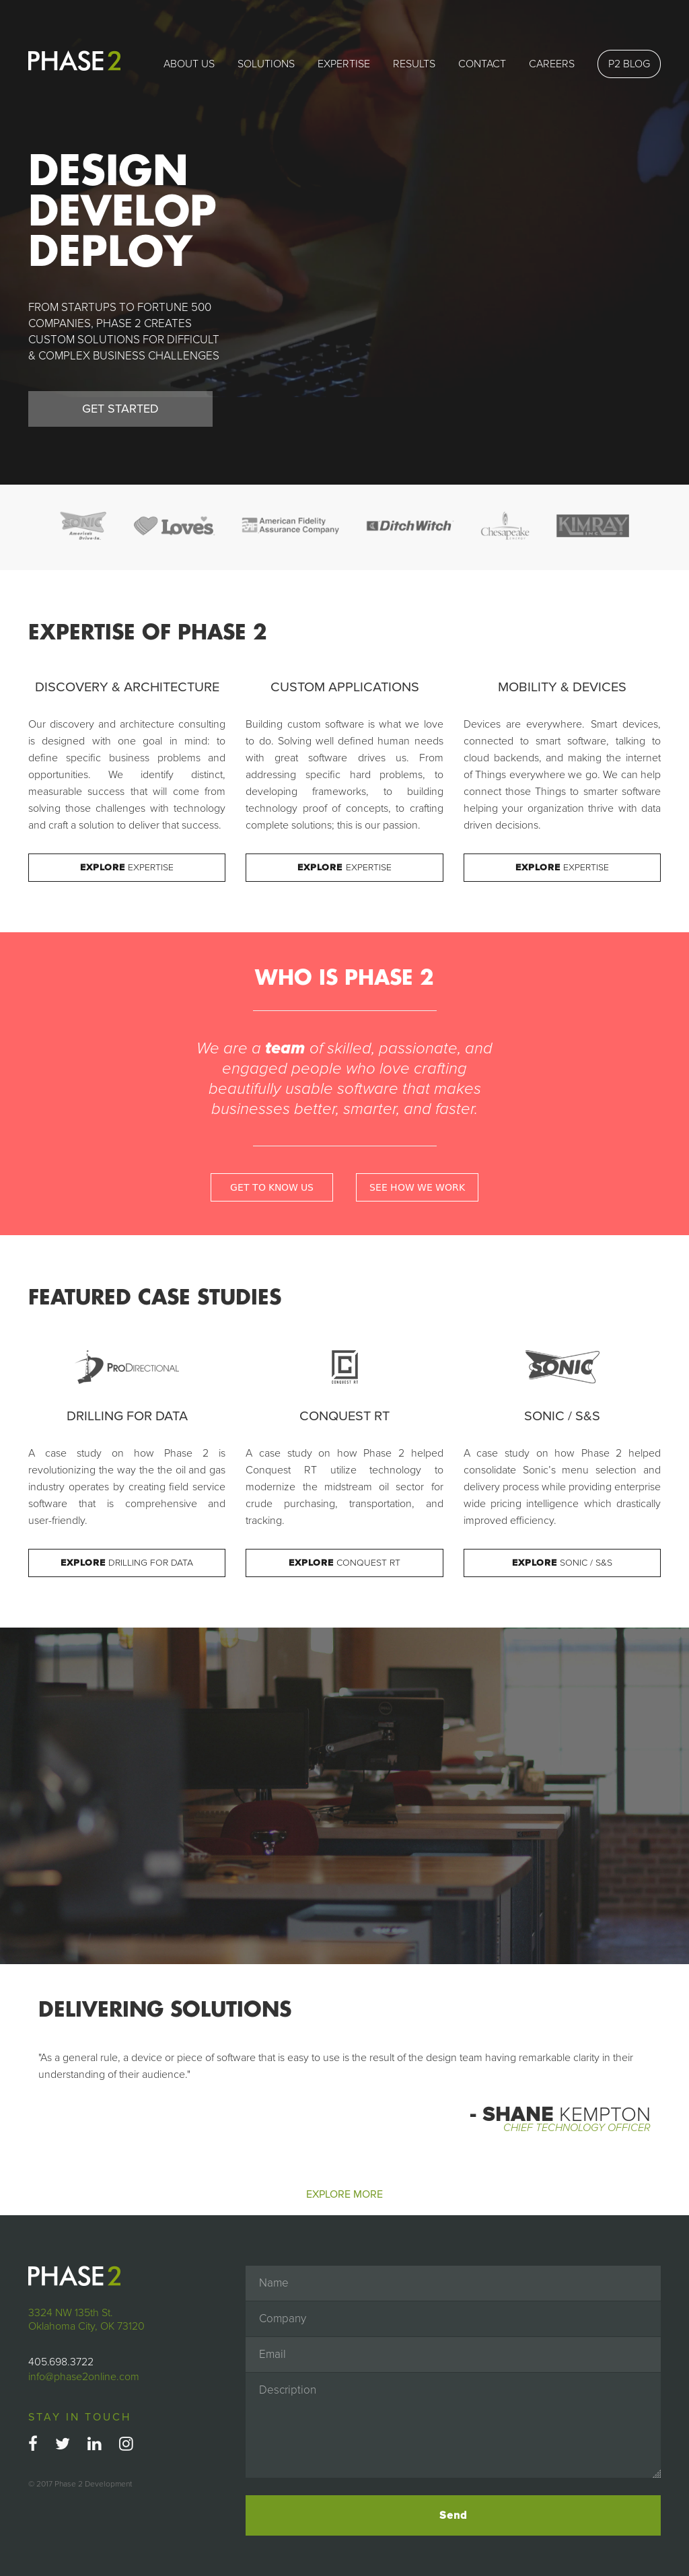 Phase 2 Interactive website history Phase 2